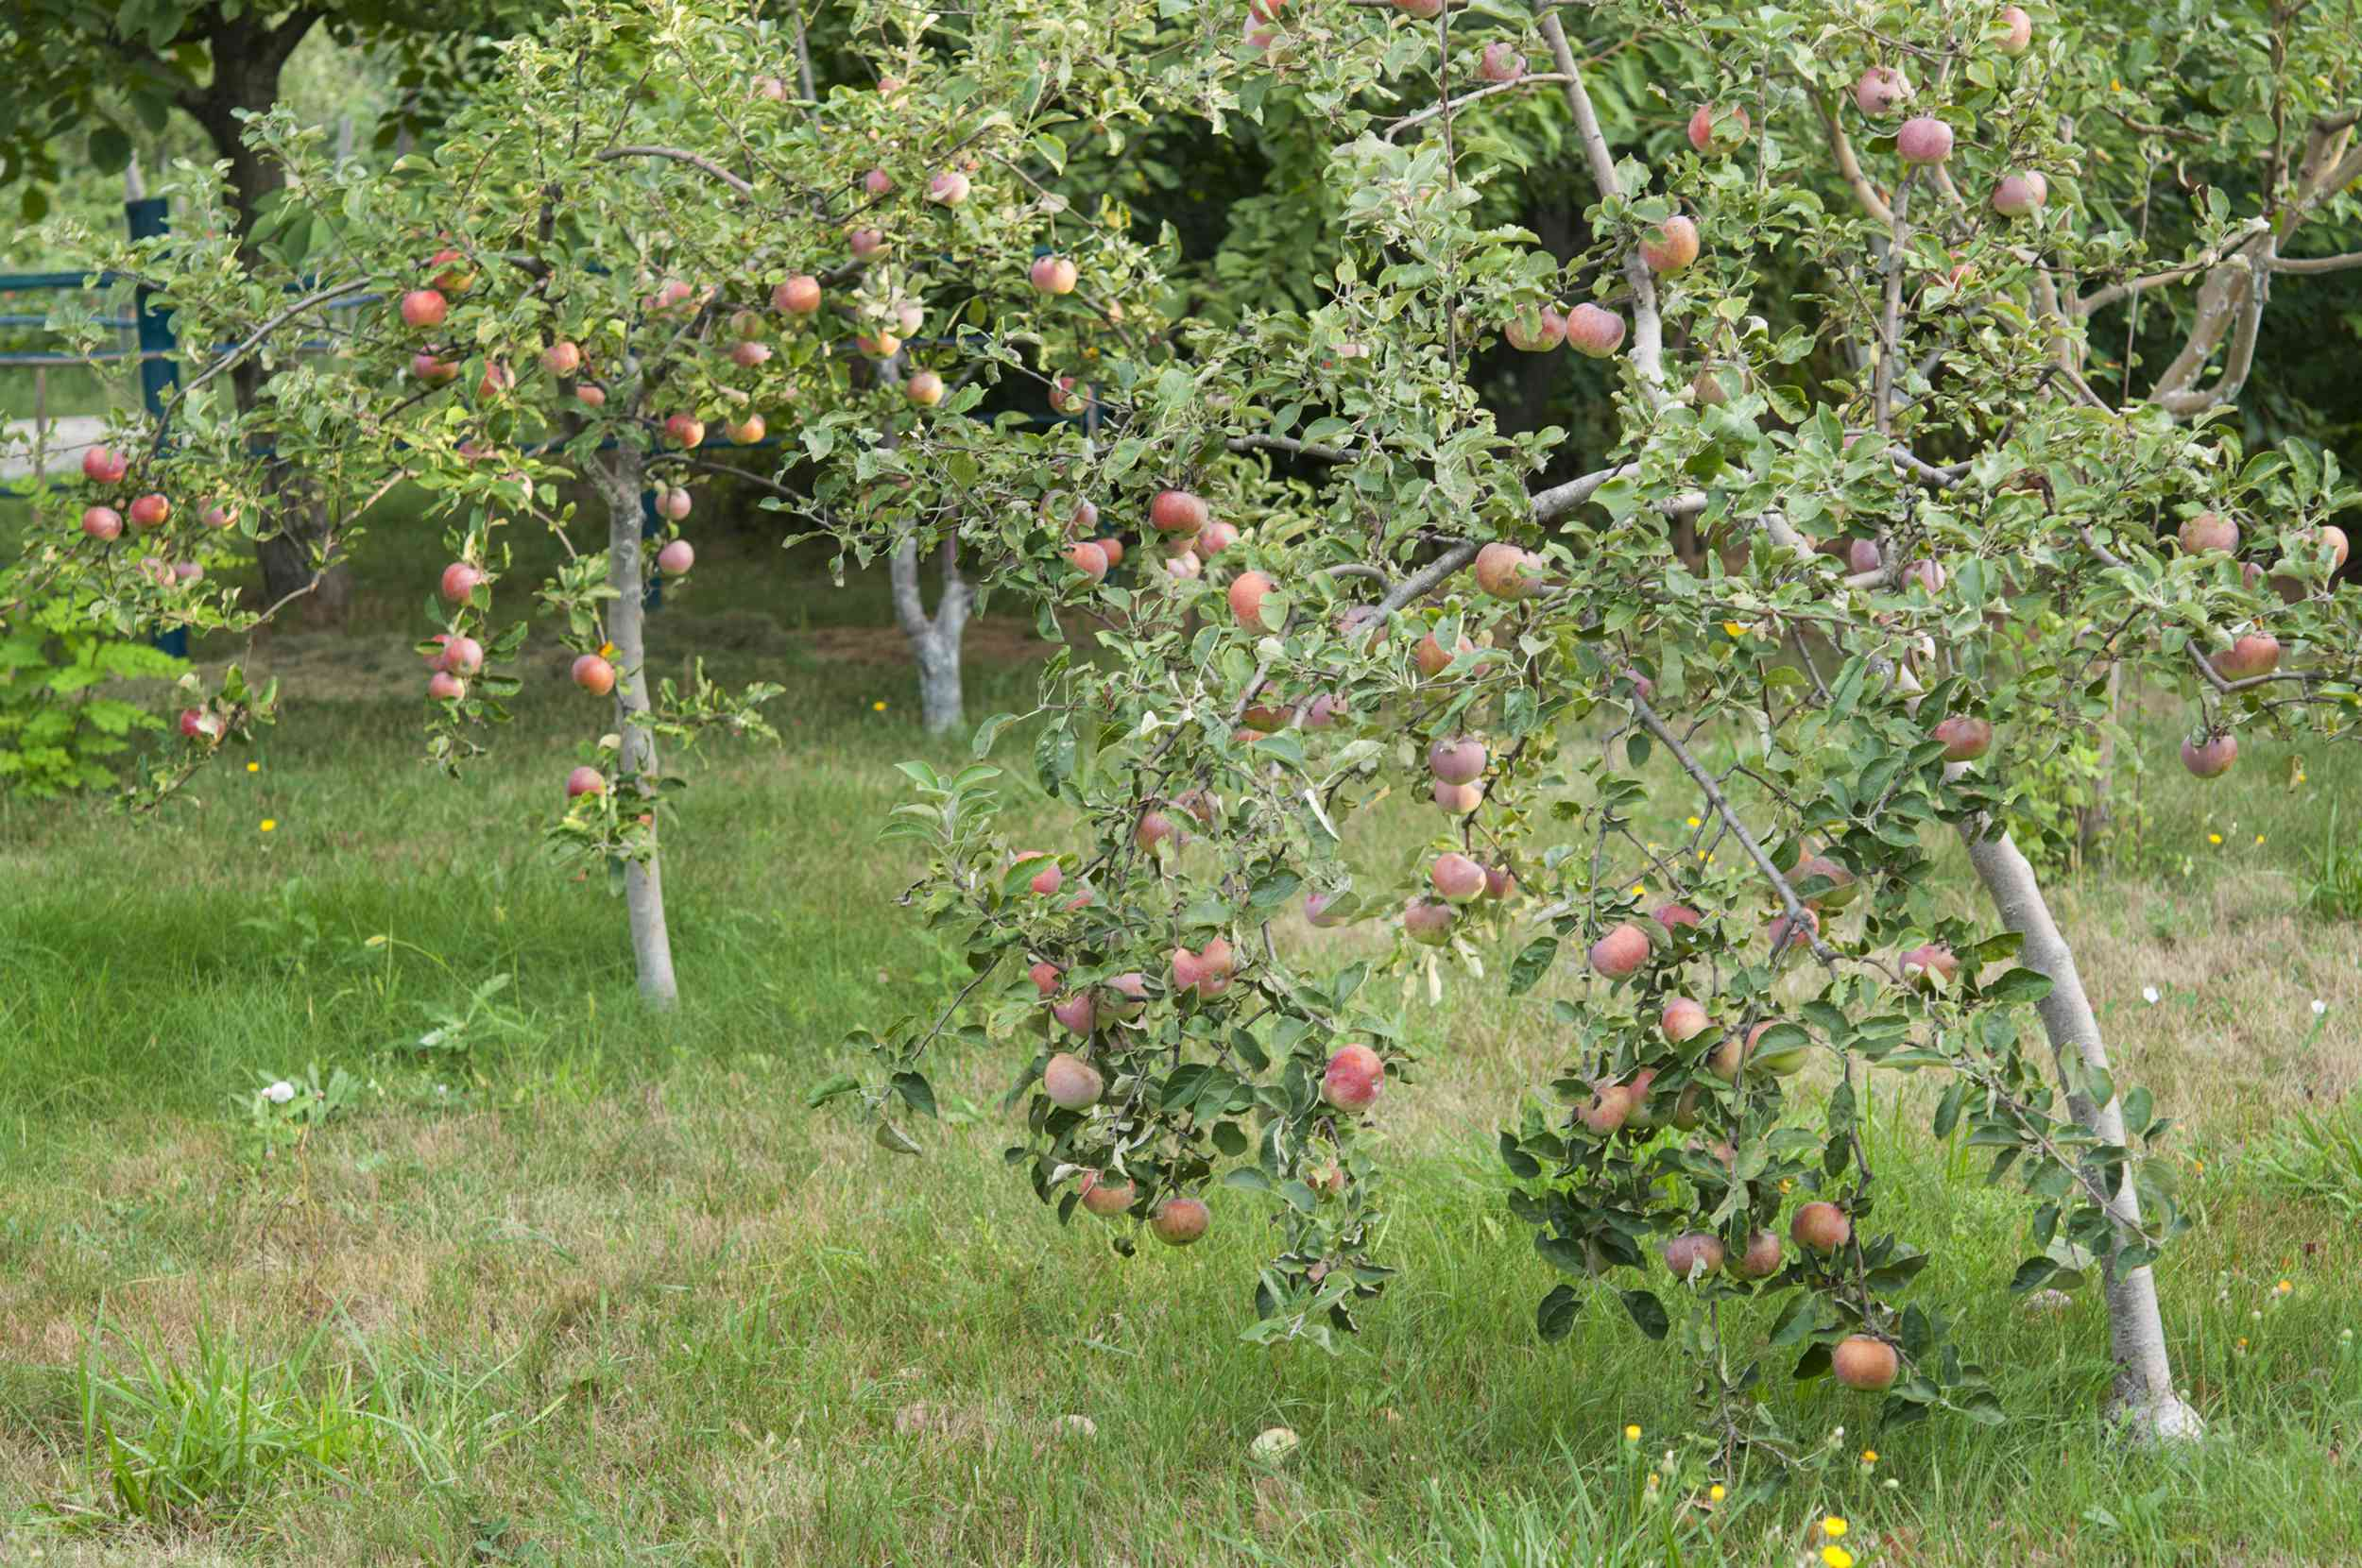 Young dwarf apple trees in a yard, heavy with fruit.